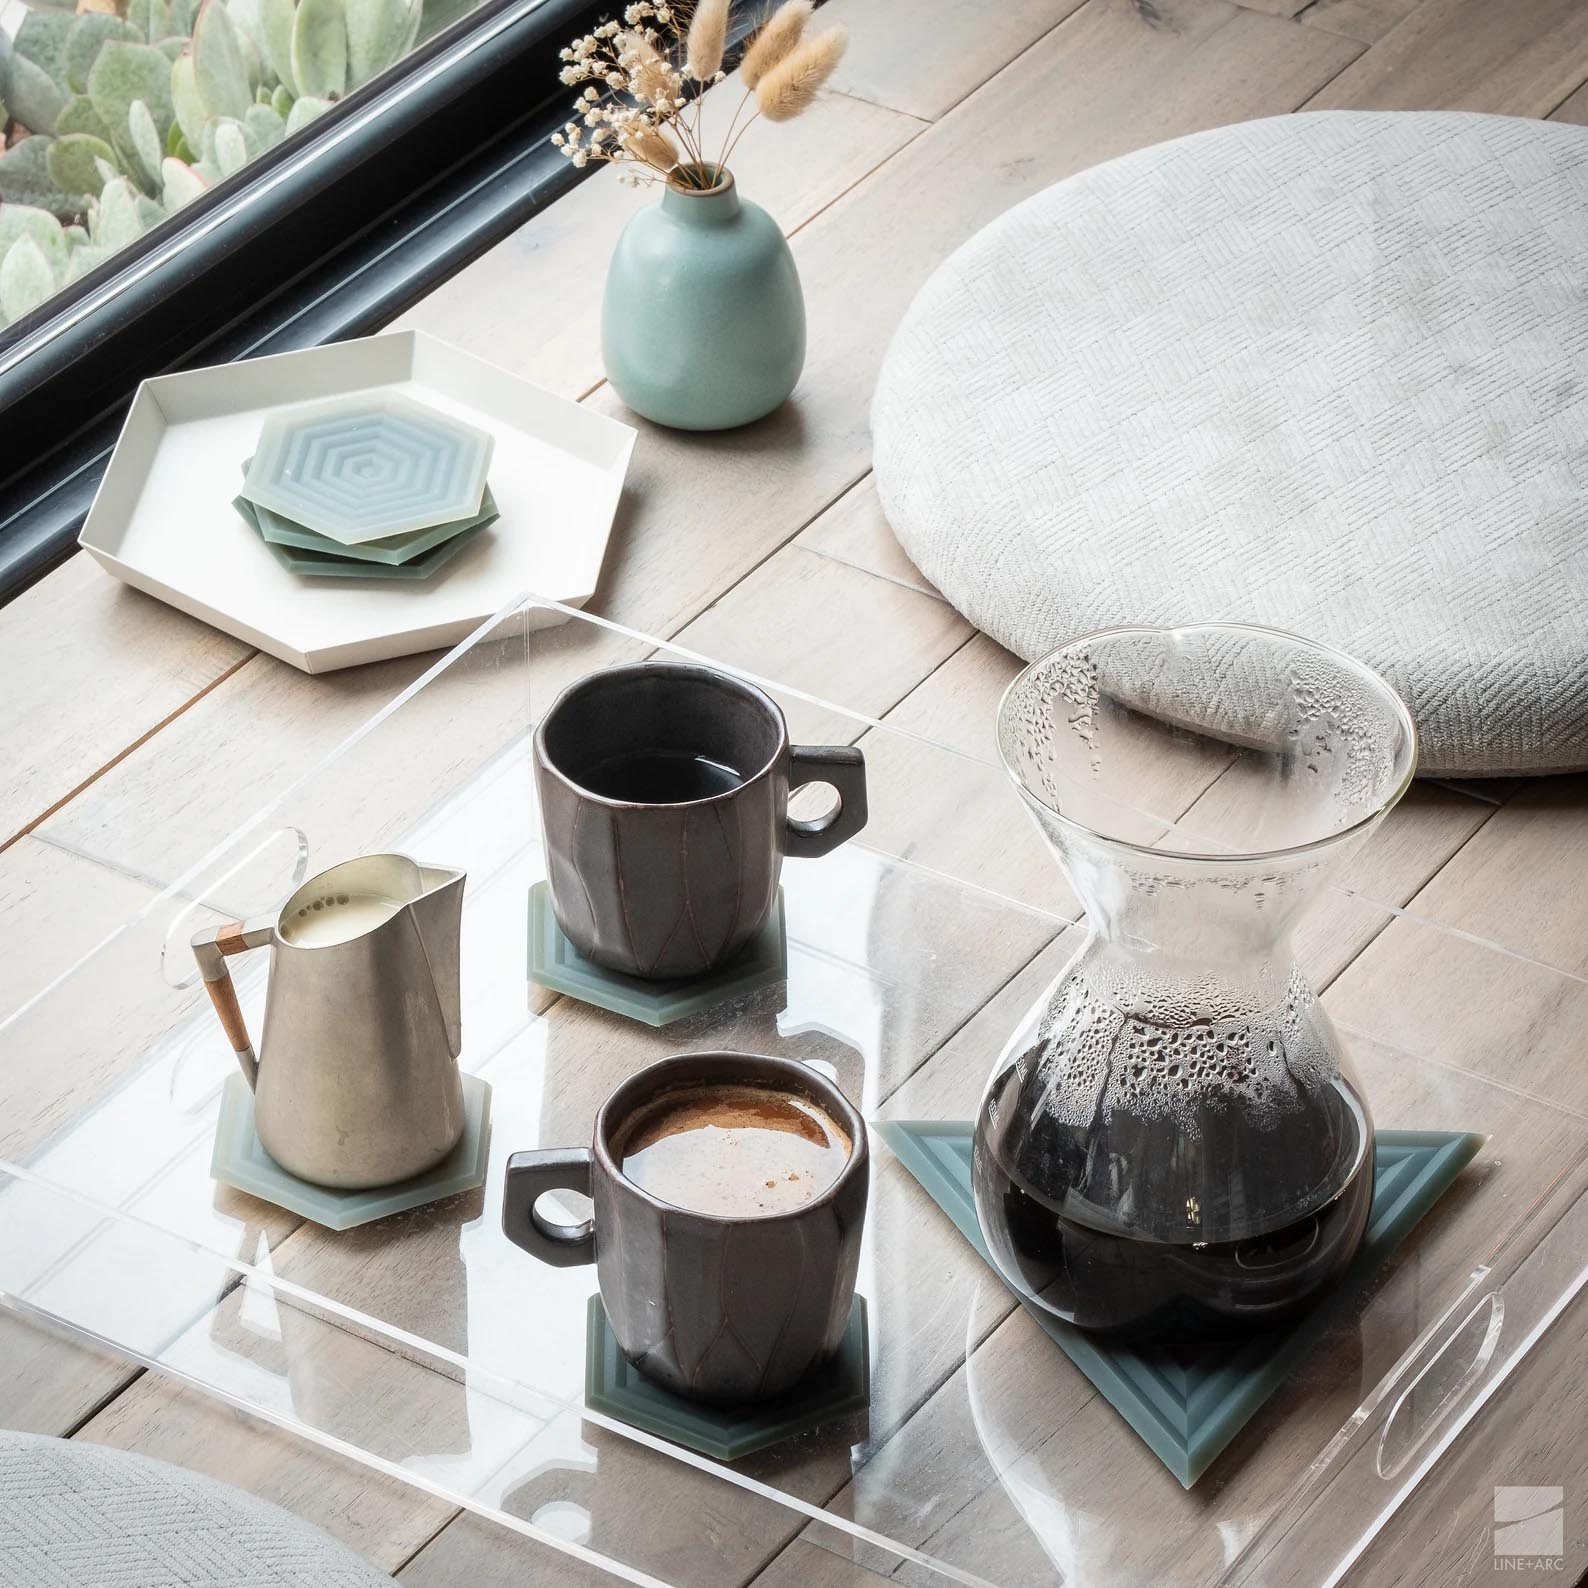 Modern Gift Ideas - Set of 6 silicone coasters.